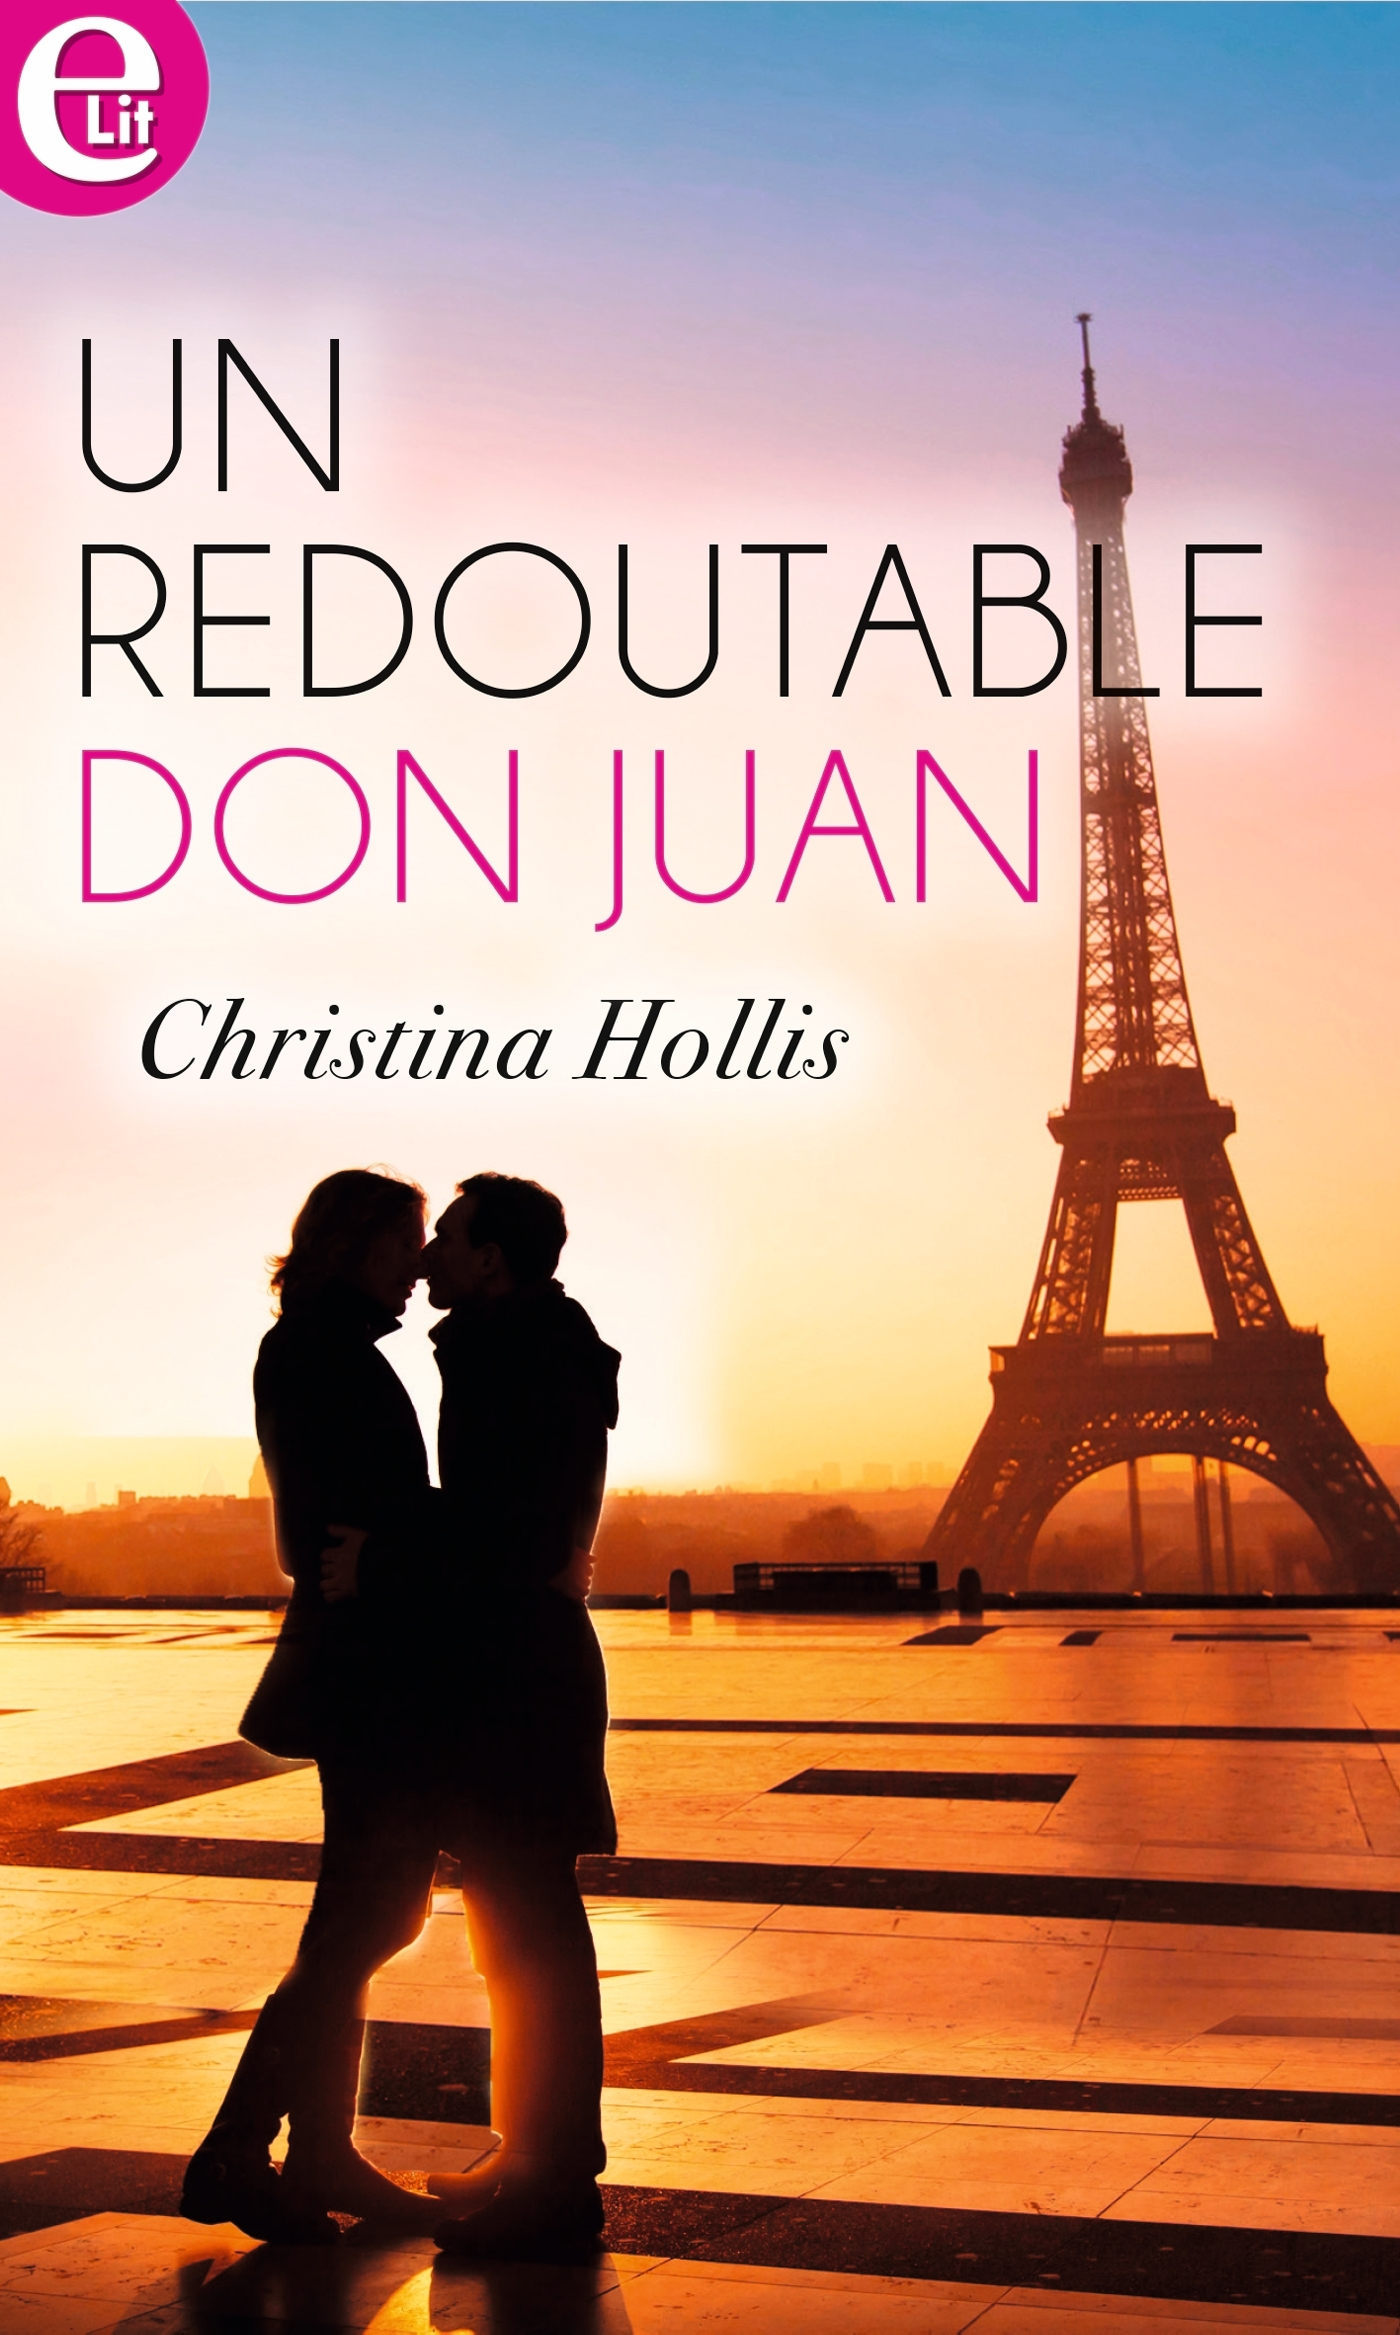 Un redoutable don Juan